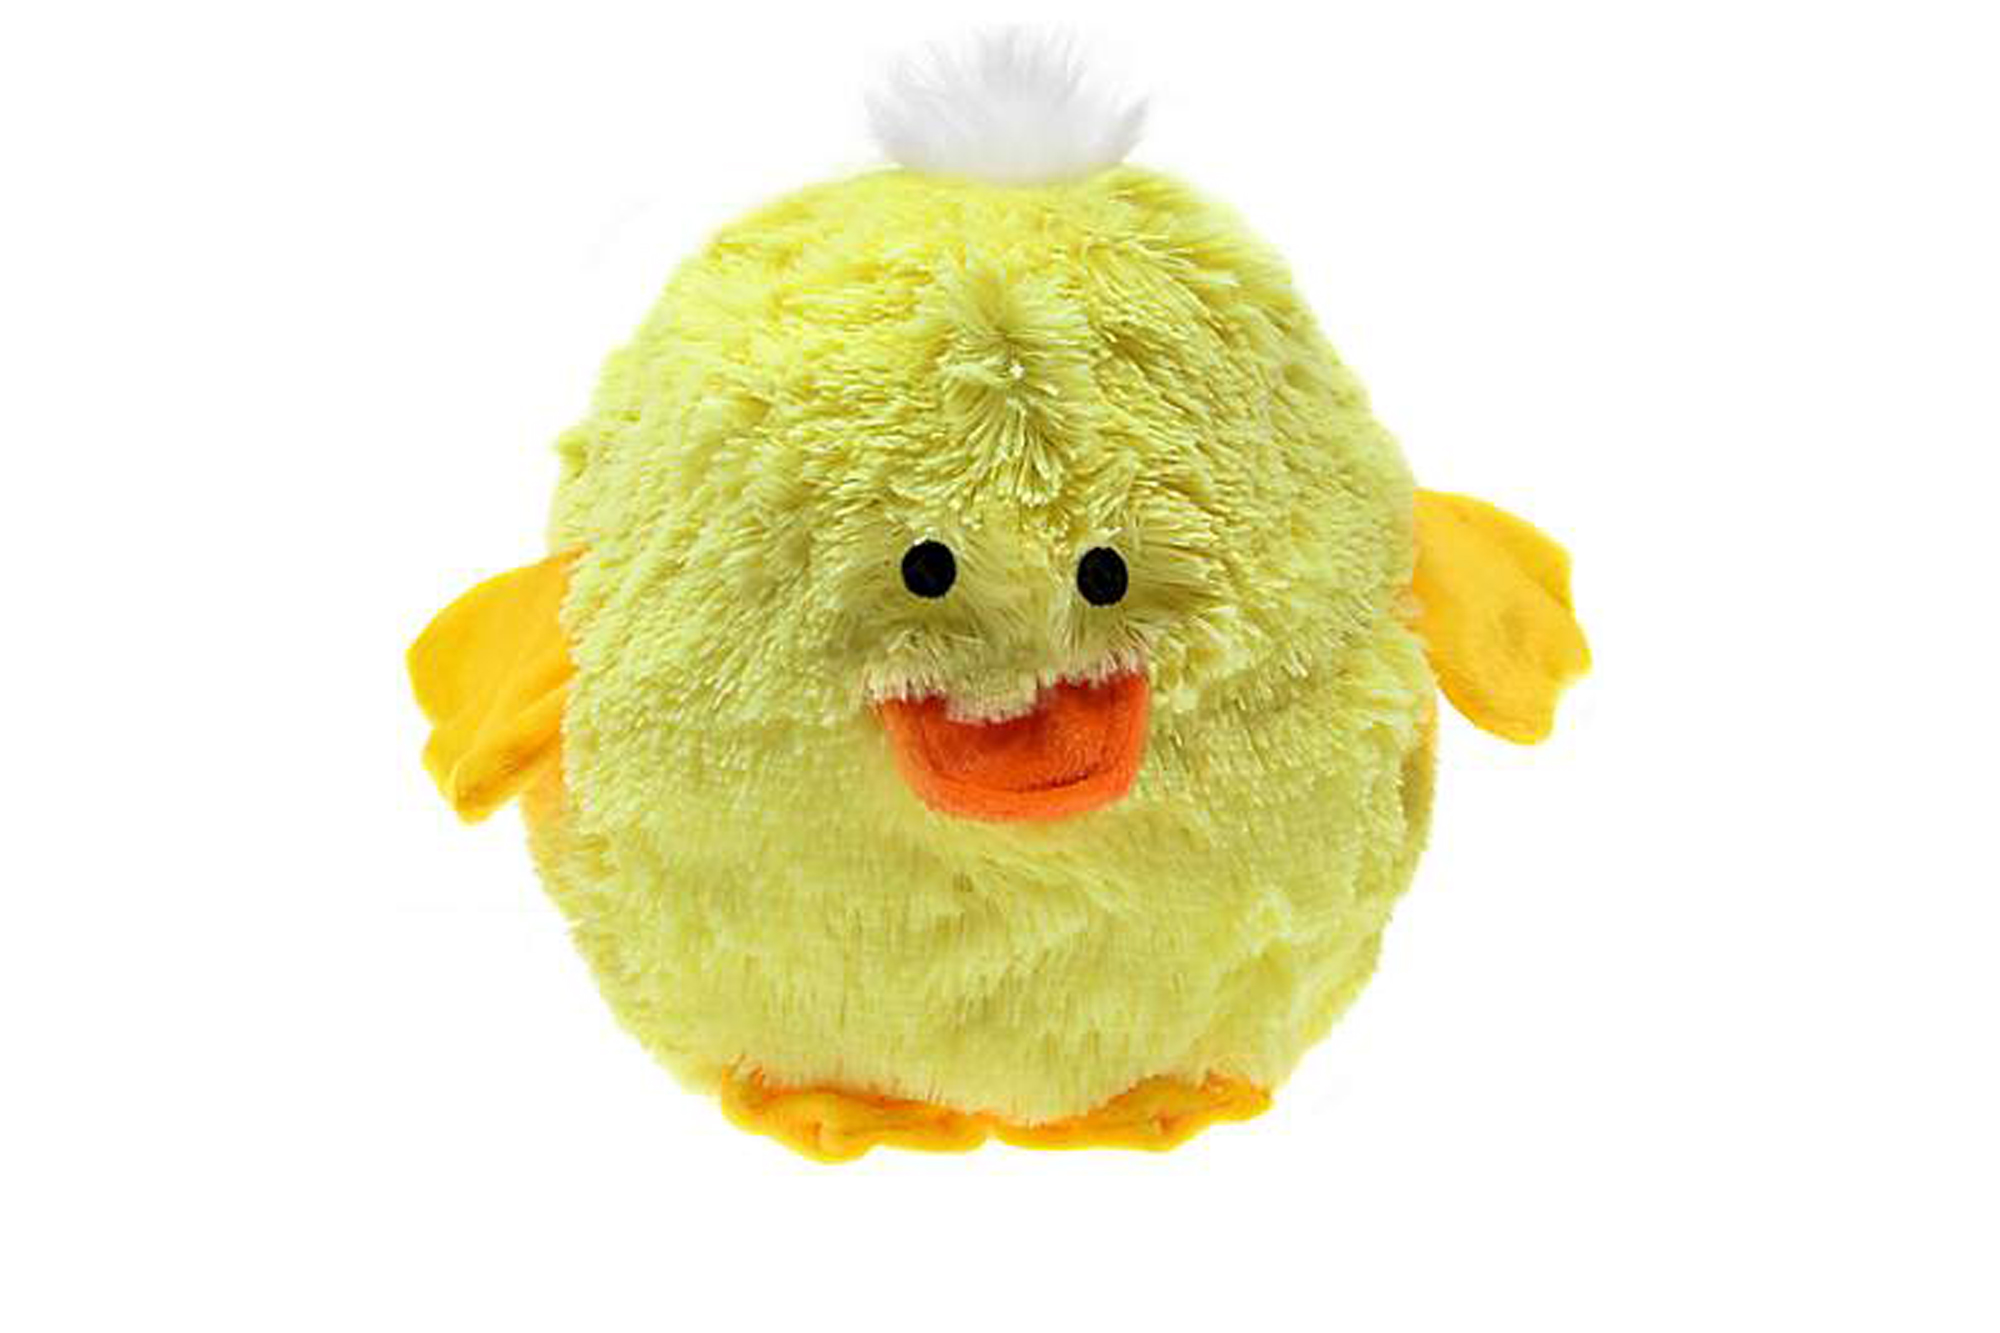 easter-chick-1-2000